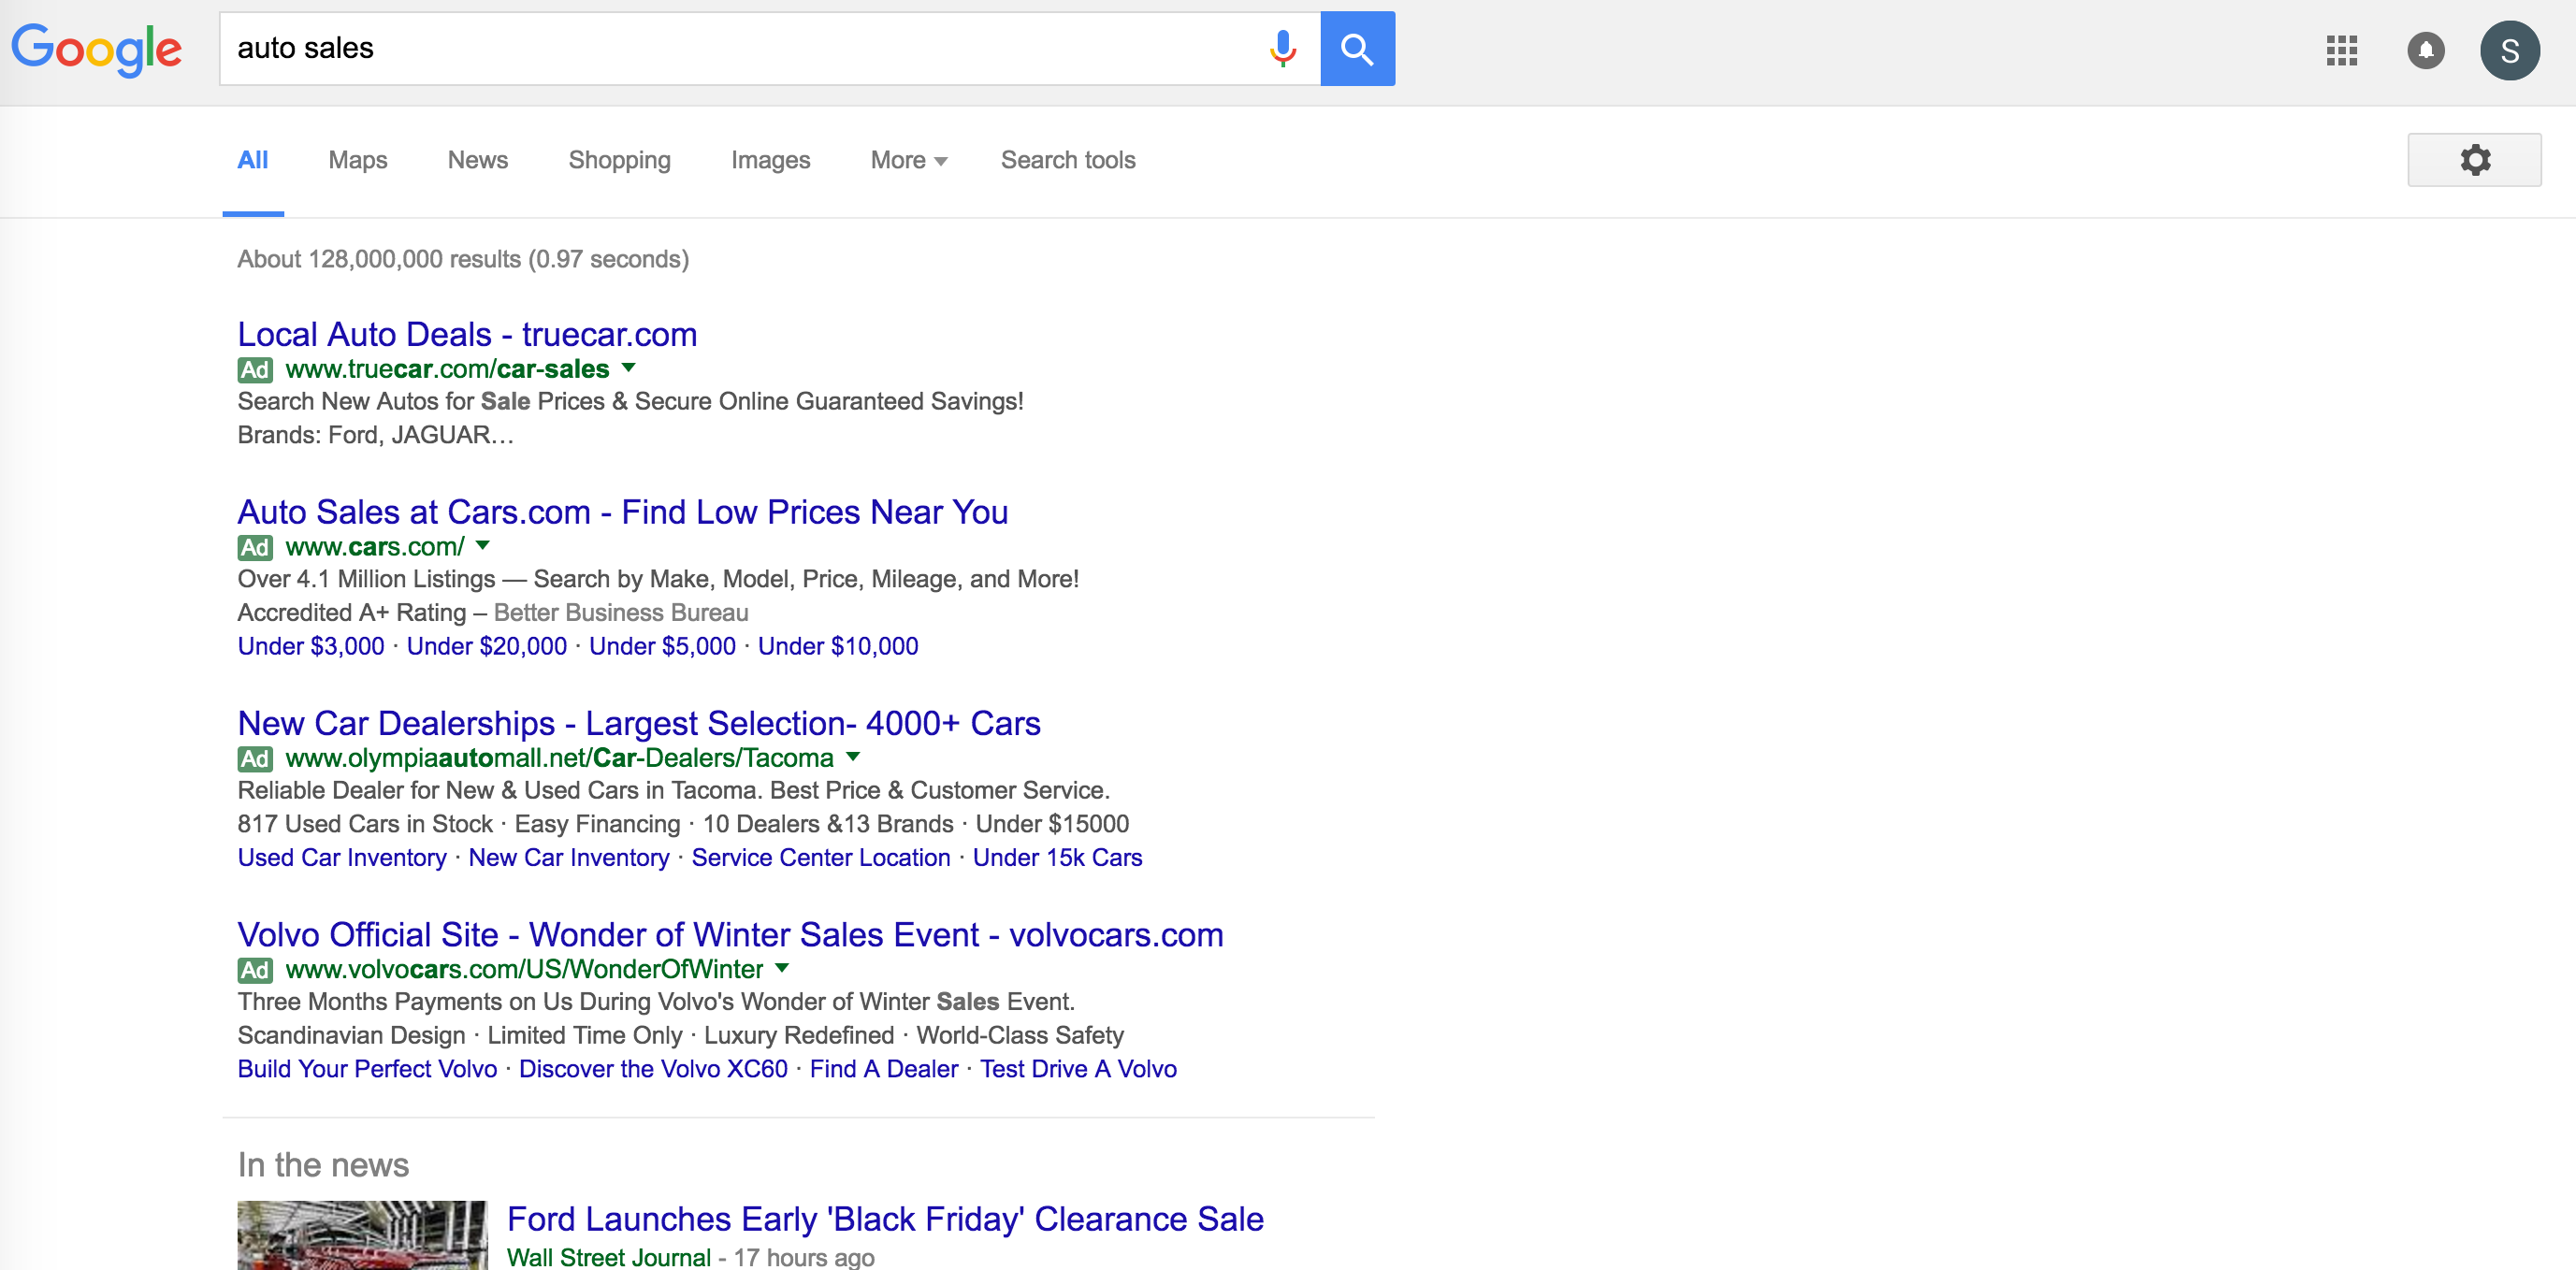 new search results